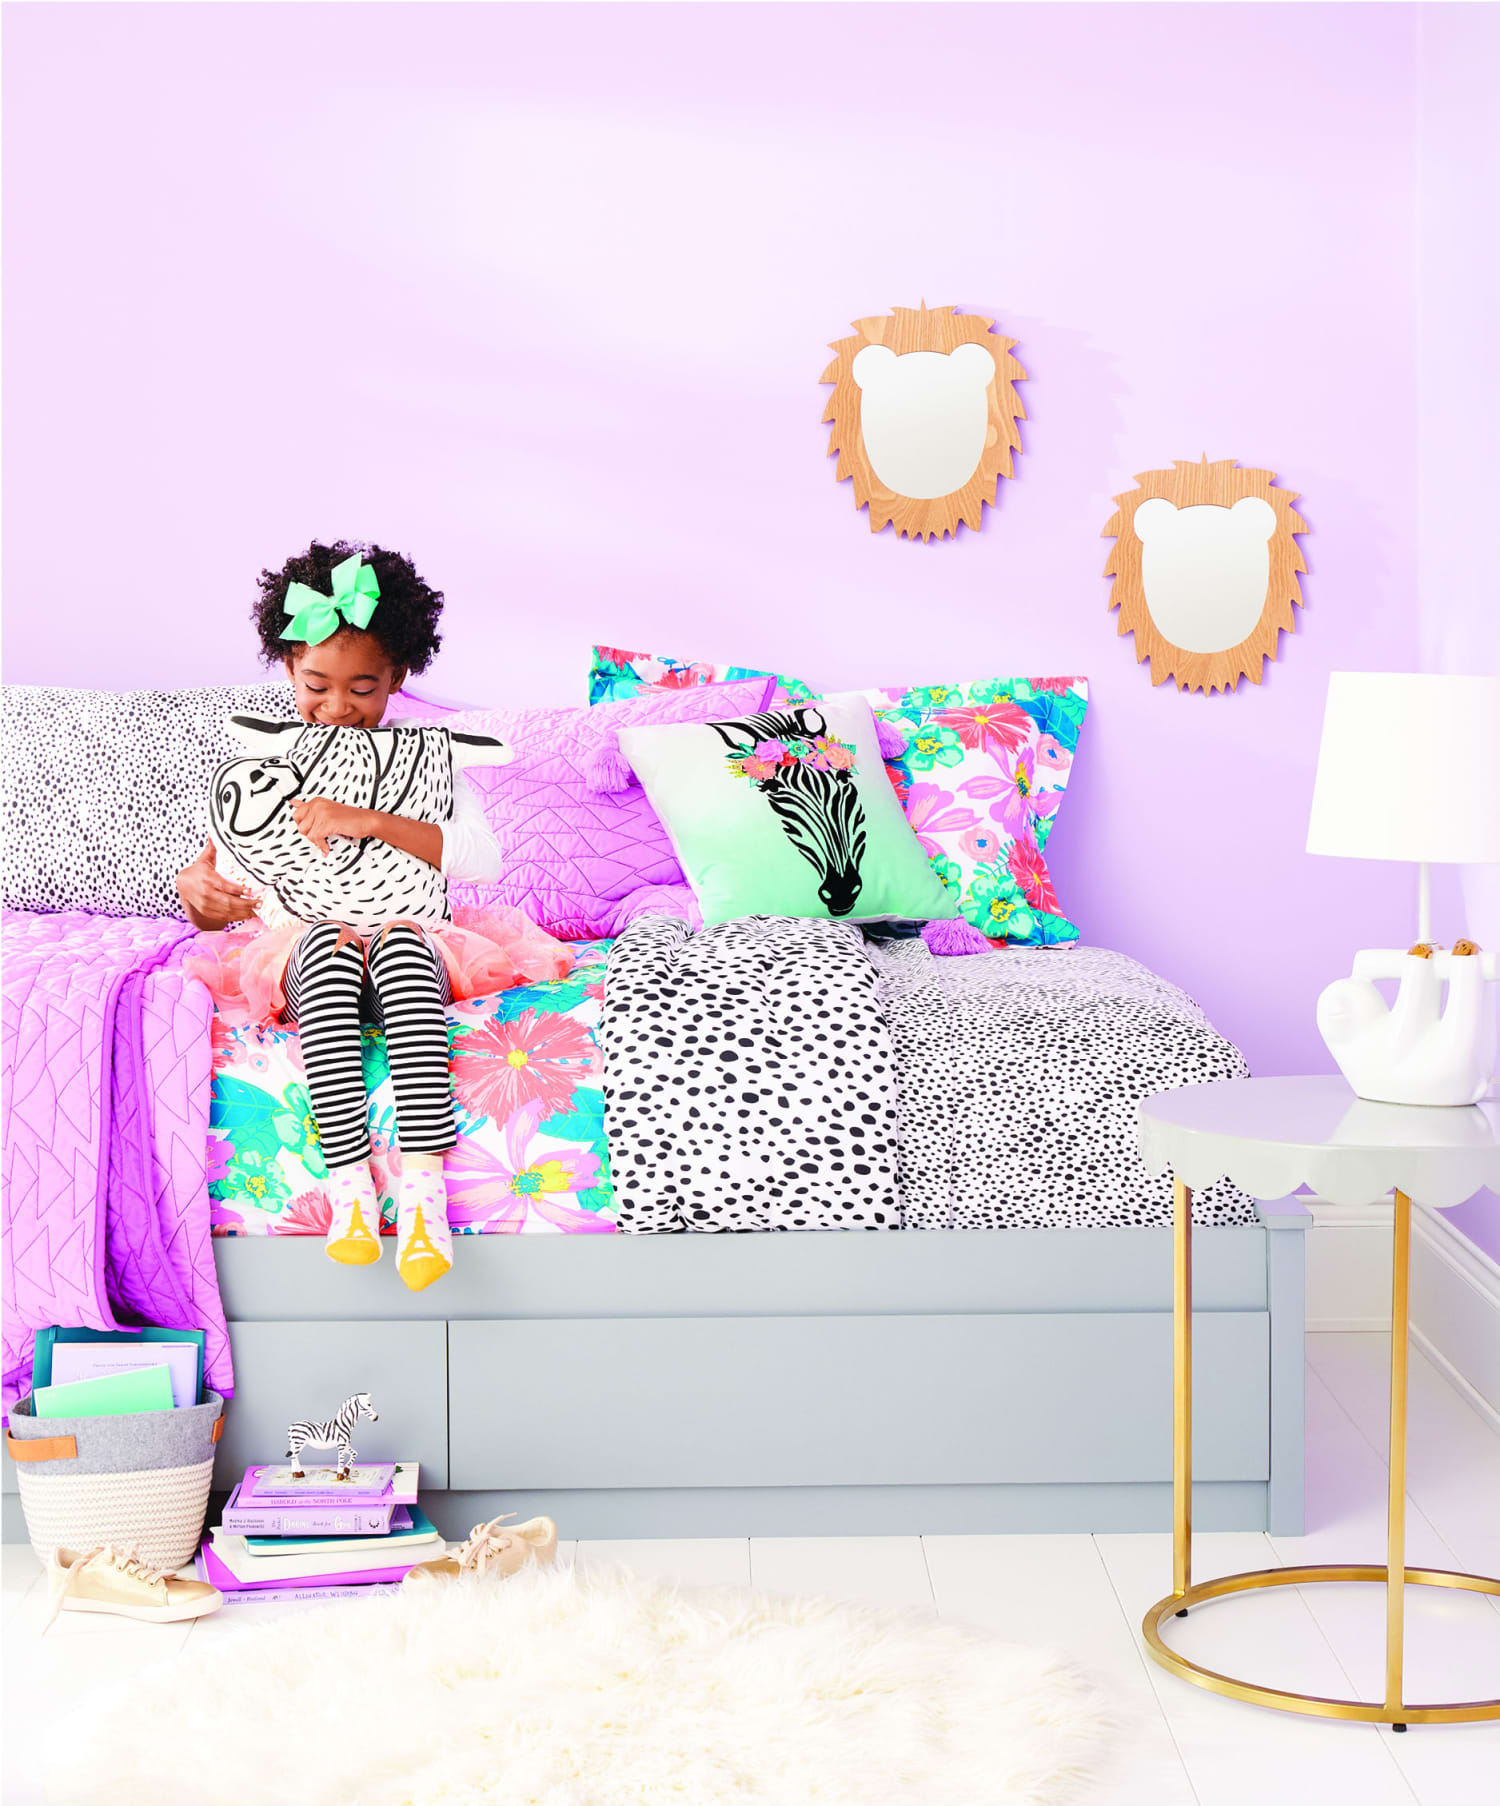 7 Amazing Bedroom Decorating Trends To Watch For 2018: Pillowfort 2018 Spring Collection, Target Kid Furniture